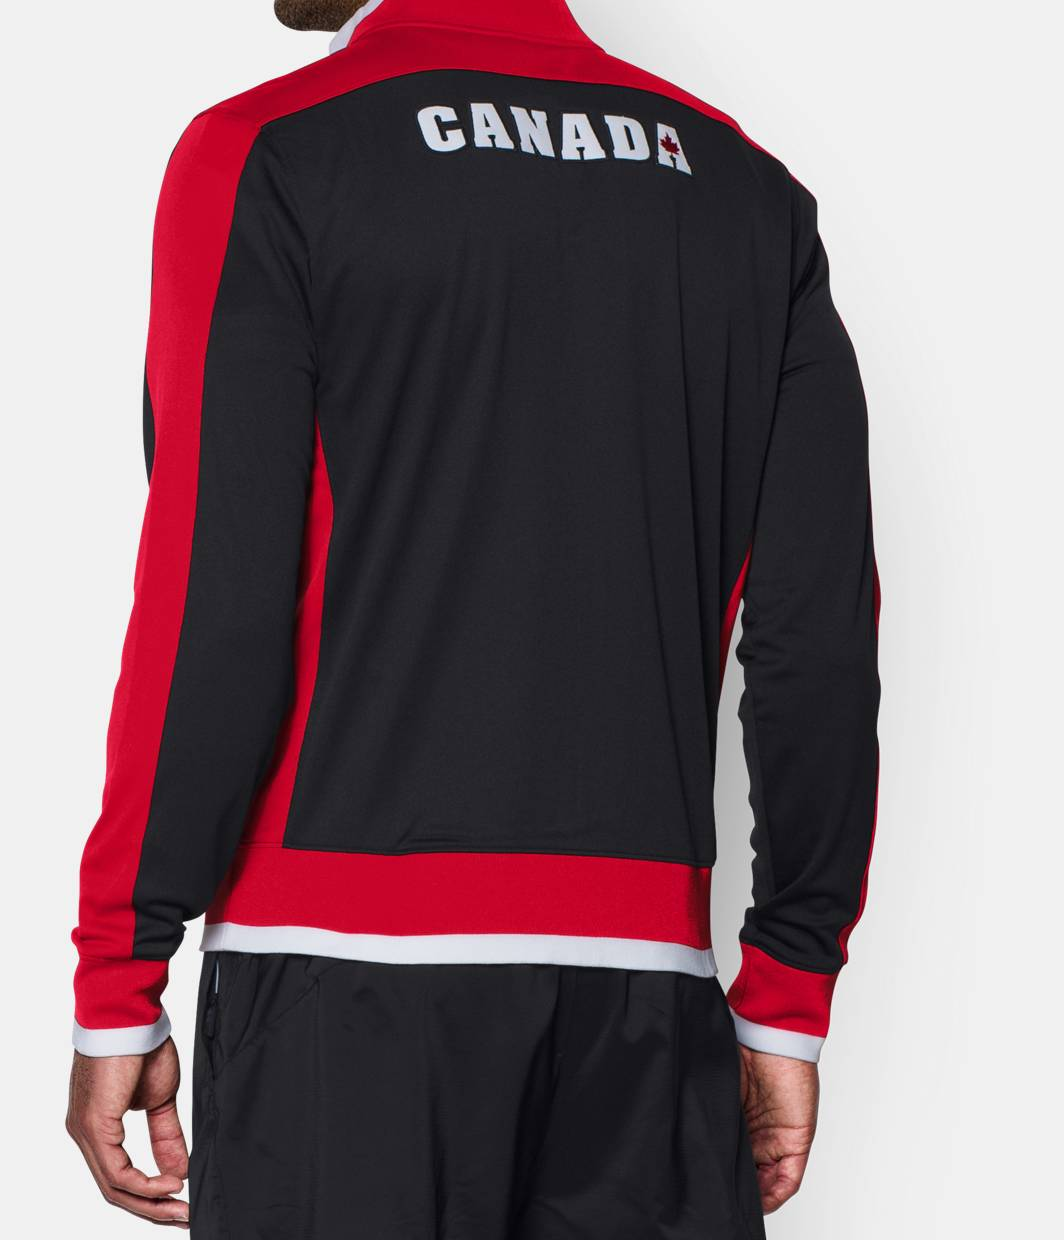 Under armour jackets canada sweater tunic for Under armour shirts canada